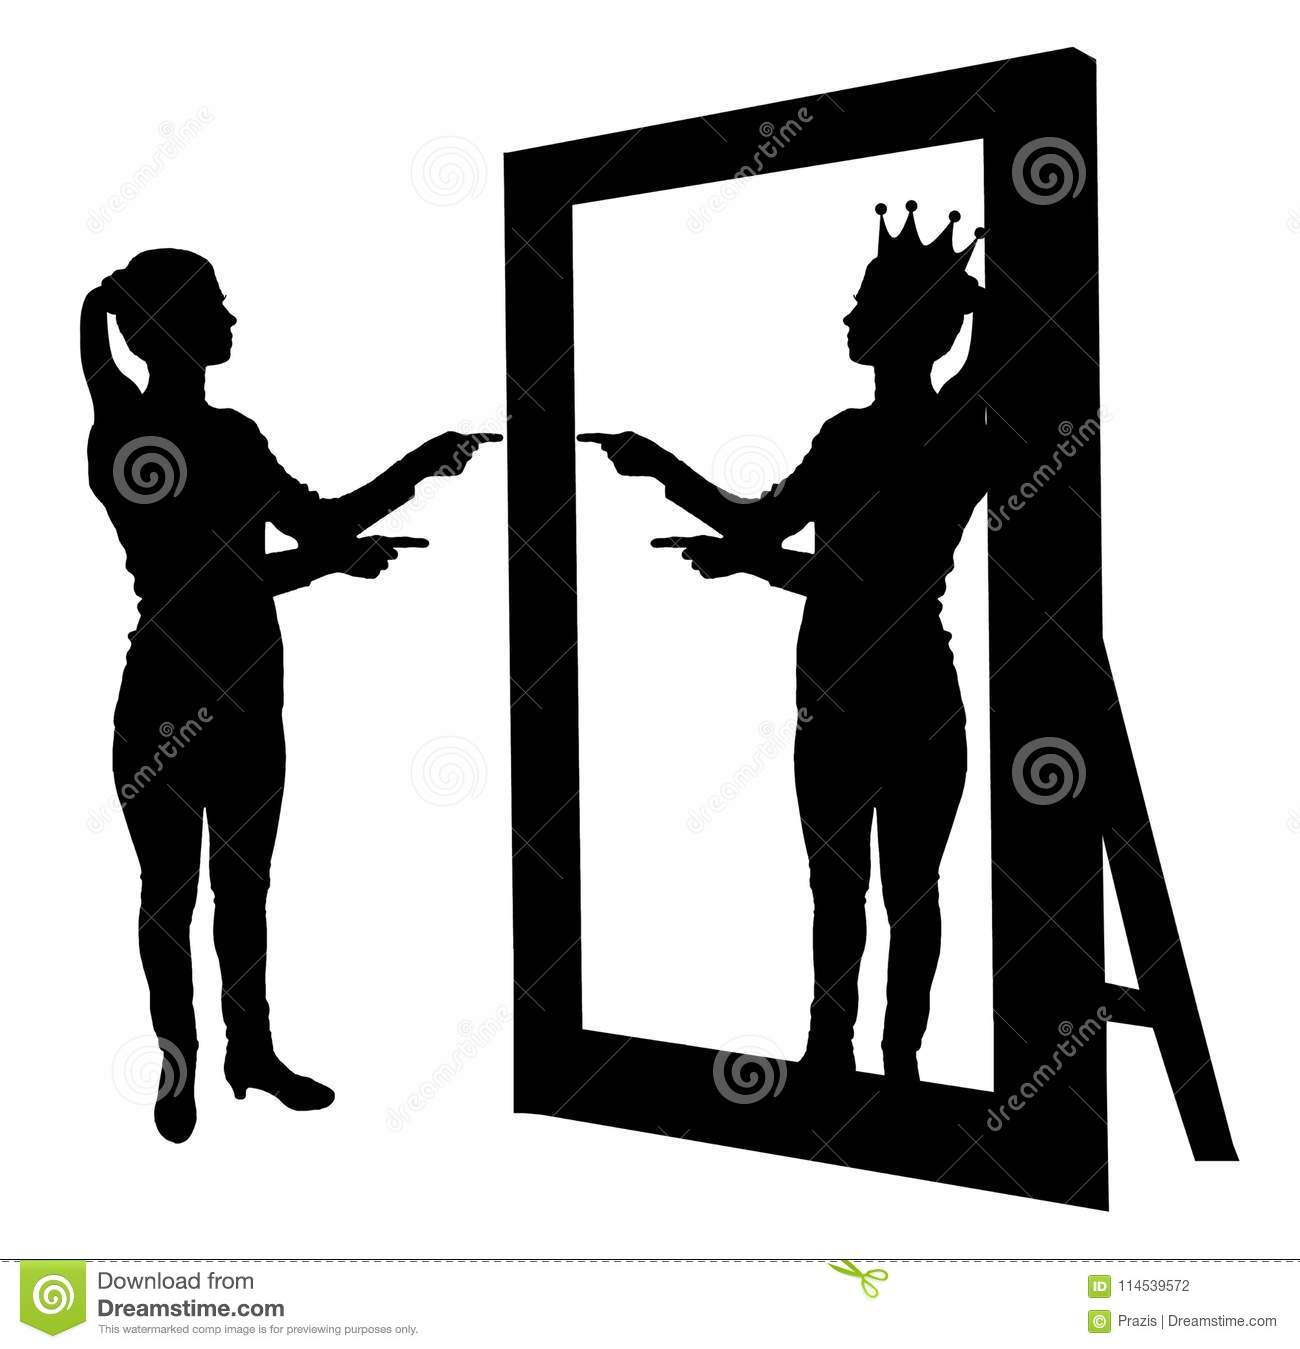 Silhouette Of A Narcissistic Woman Raises Her Self Esteem